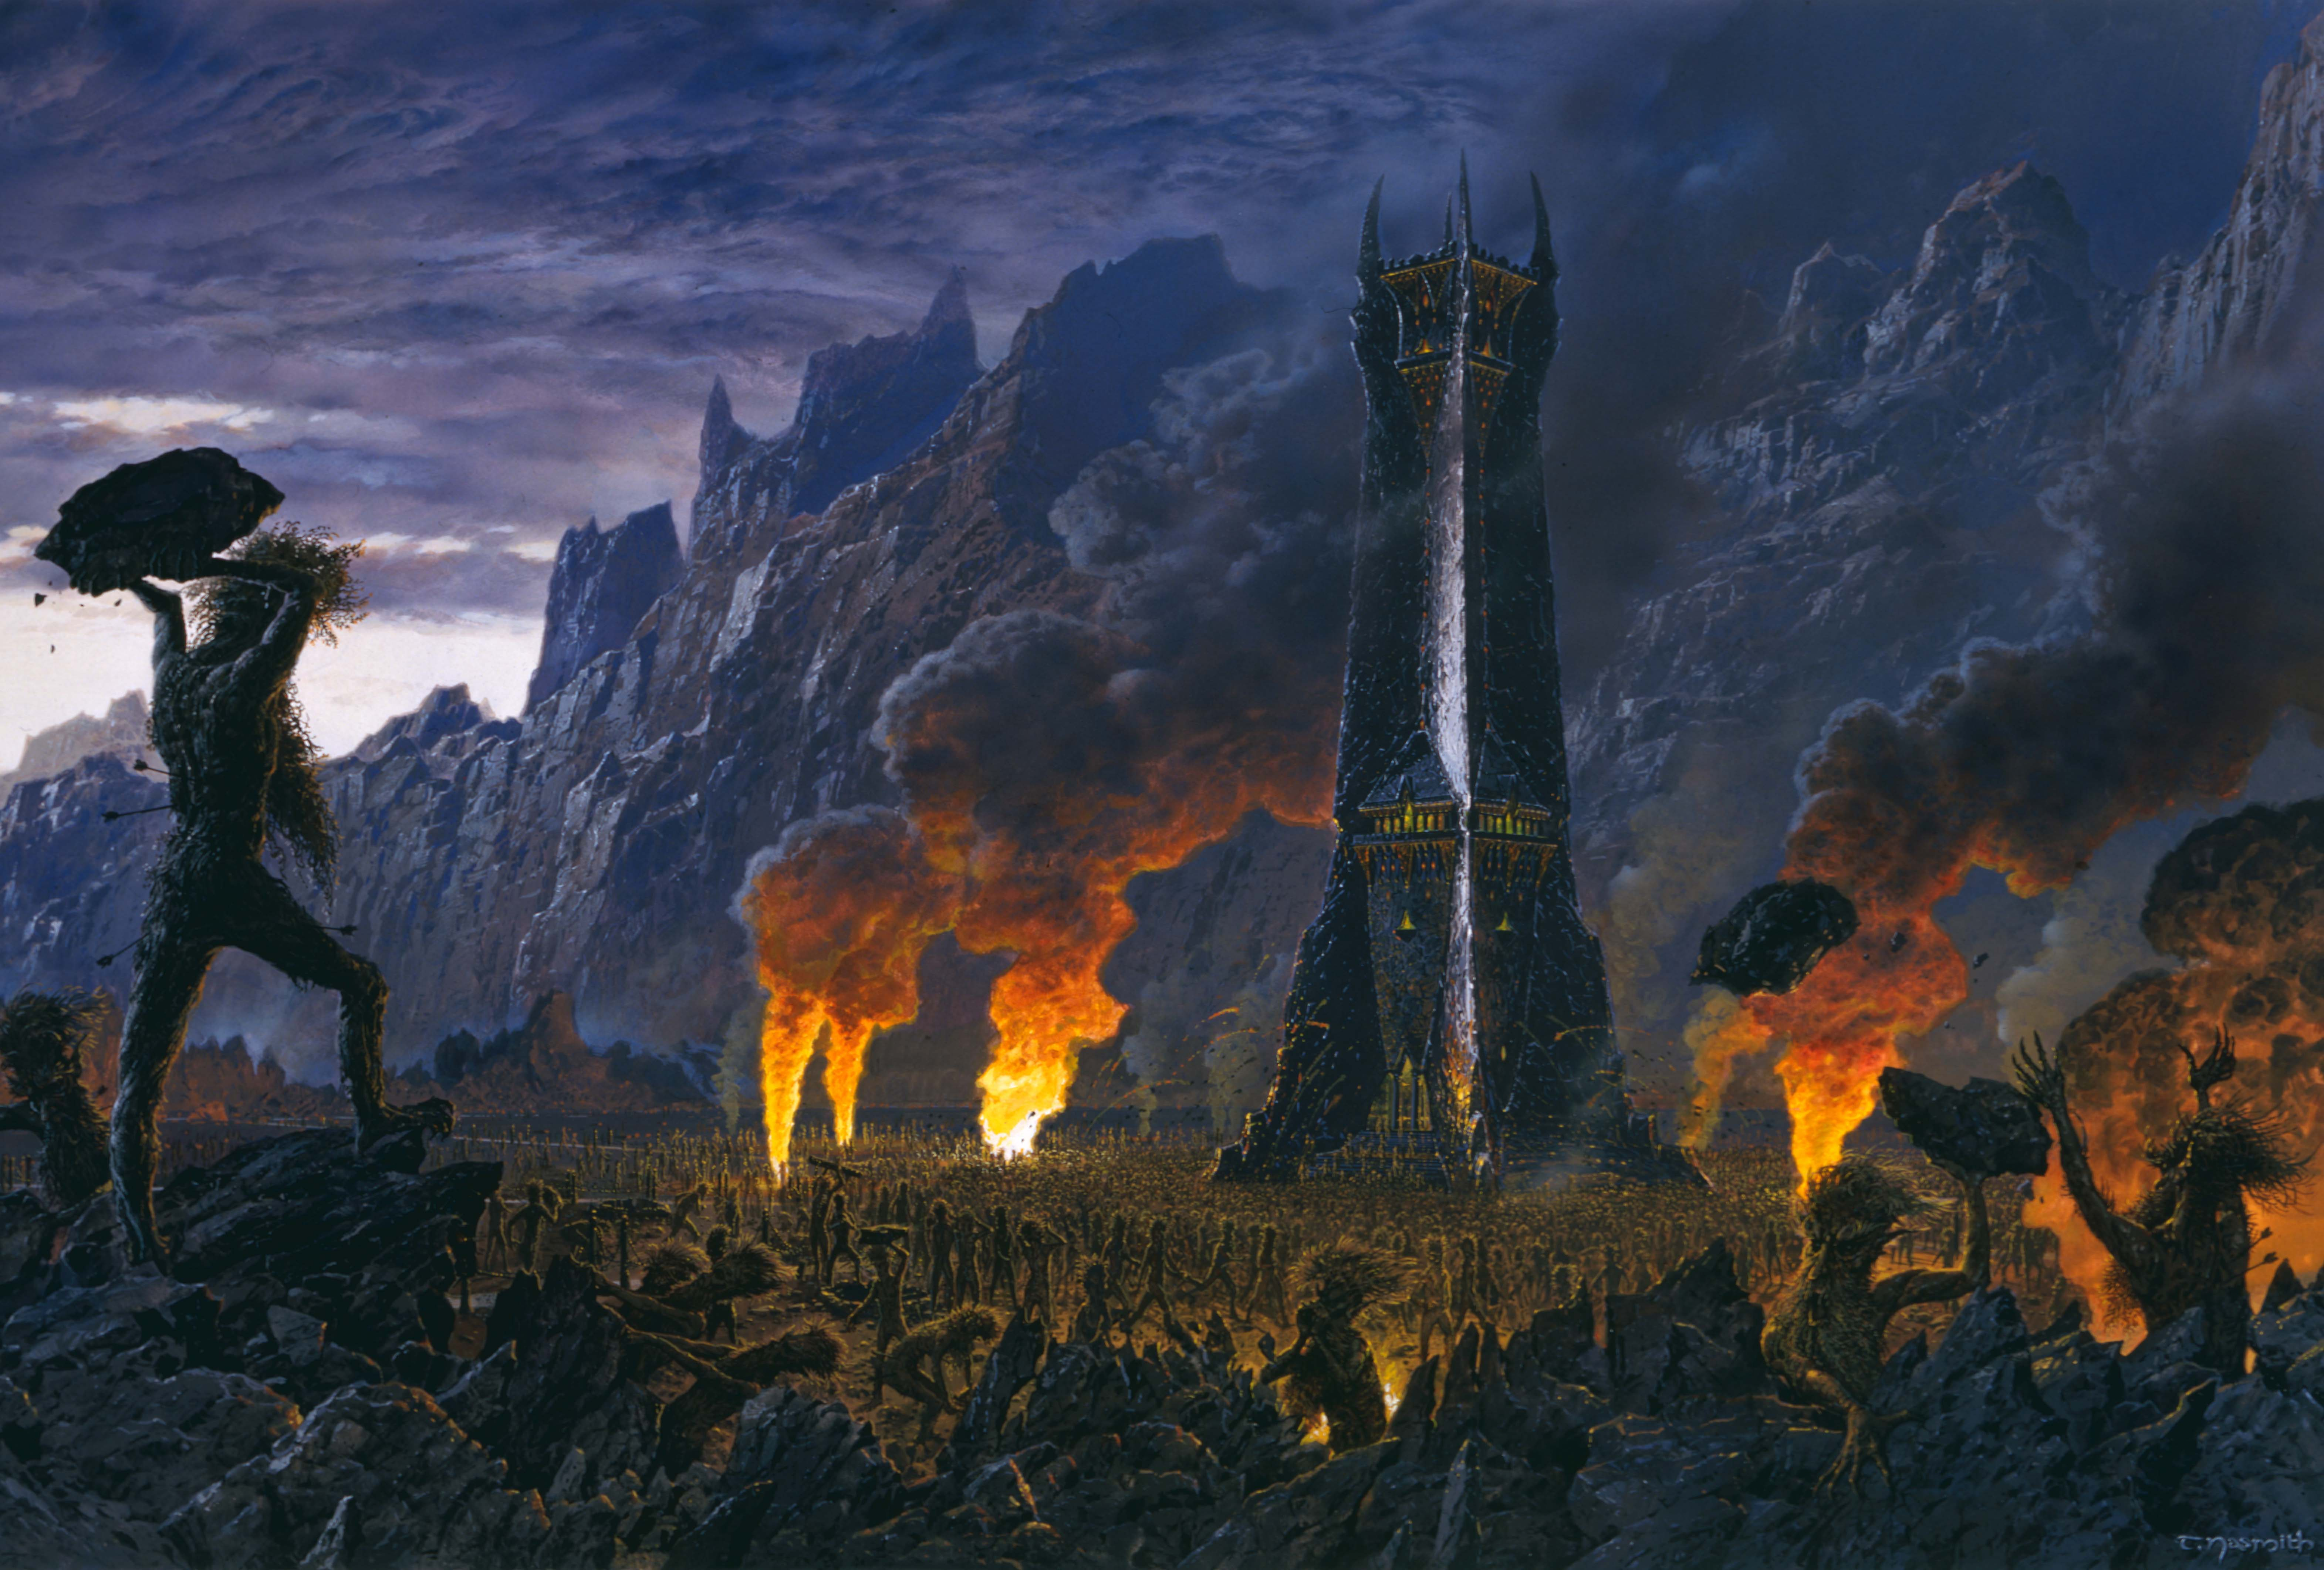 The Wrath of the Ents, illustration by Ted Nasmith (2003)